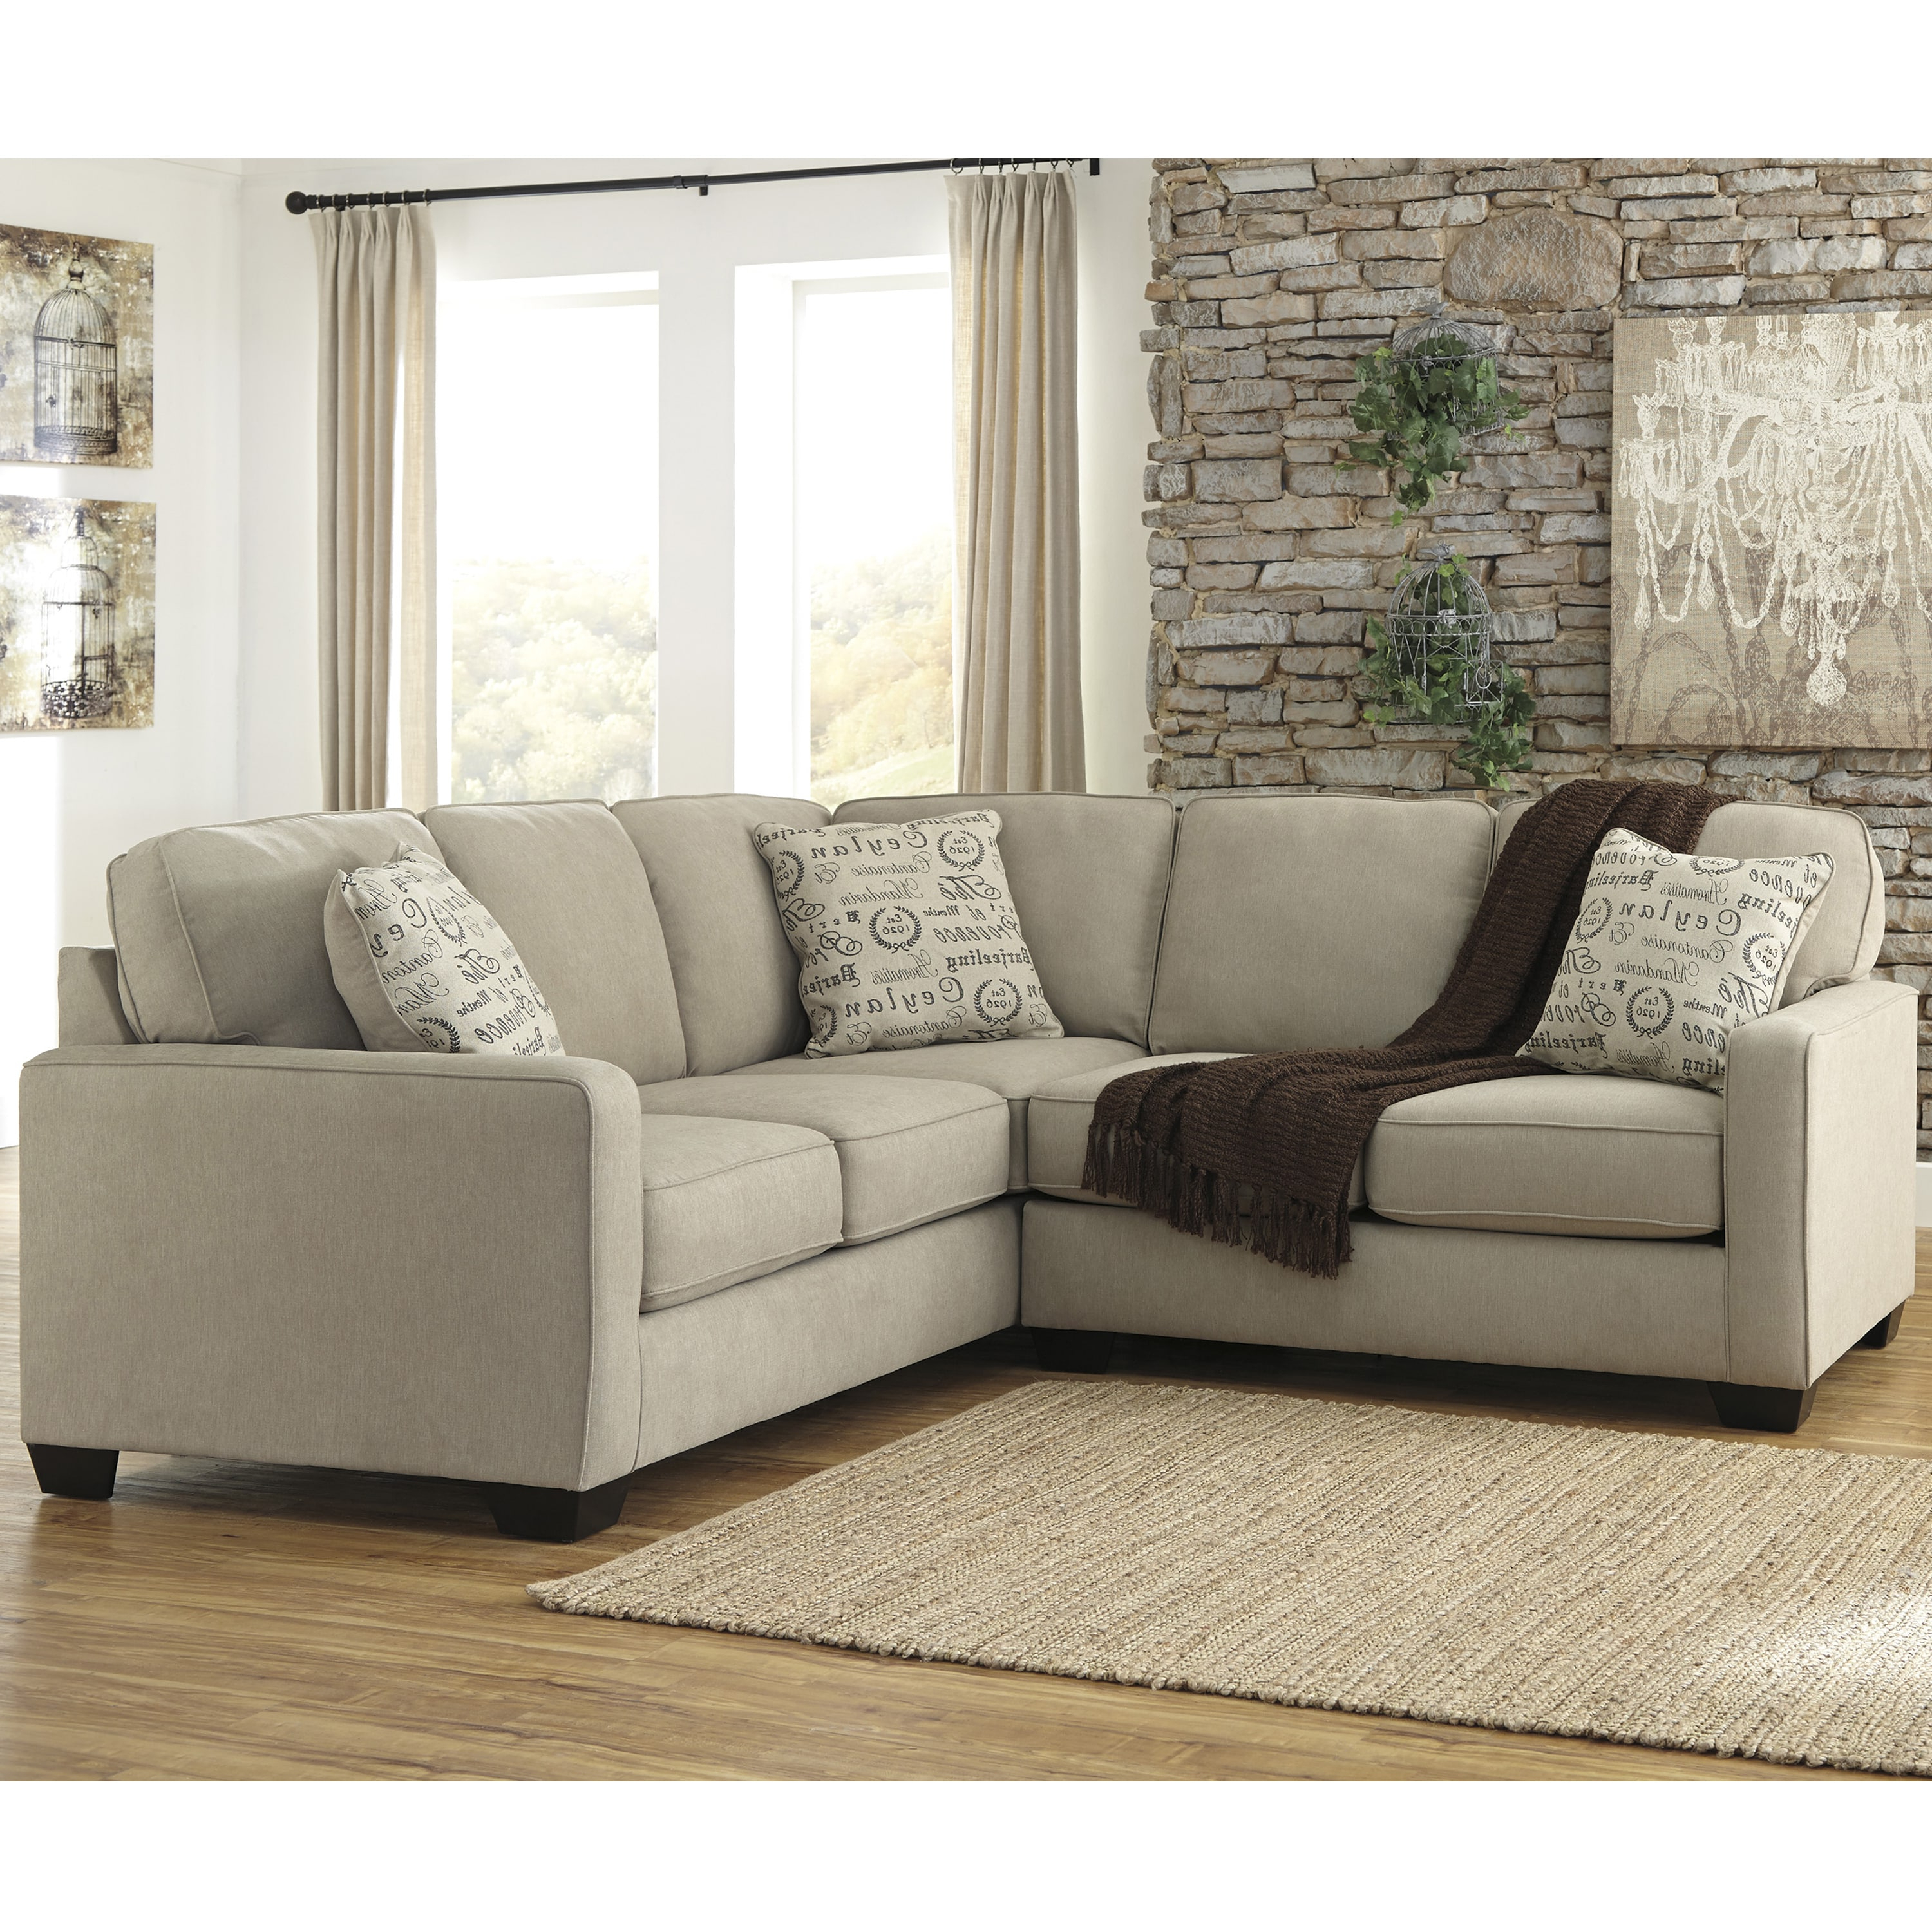 Patola Park Patina Large Sectional W/ Chaise Inside Popular Elm Grande Ii 2 Piece Sectionals (Gallery 9 of 20)